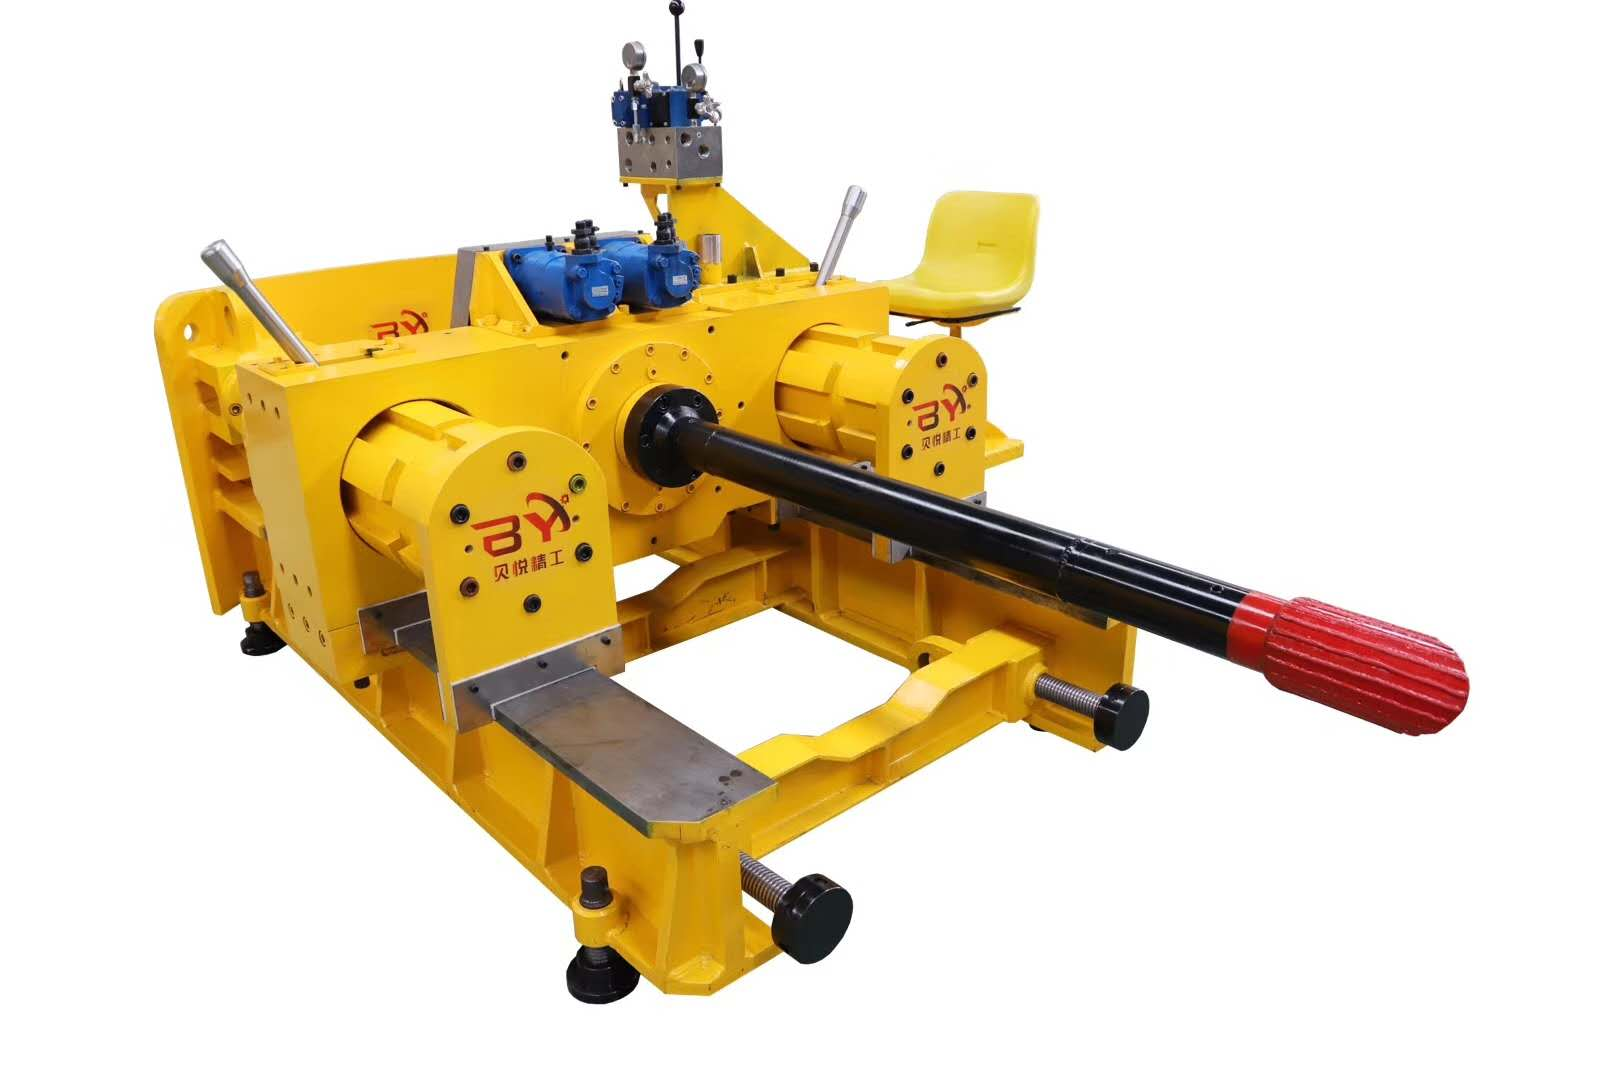 <h3>BY series auger boring machine</h3>